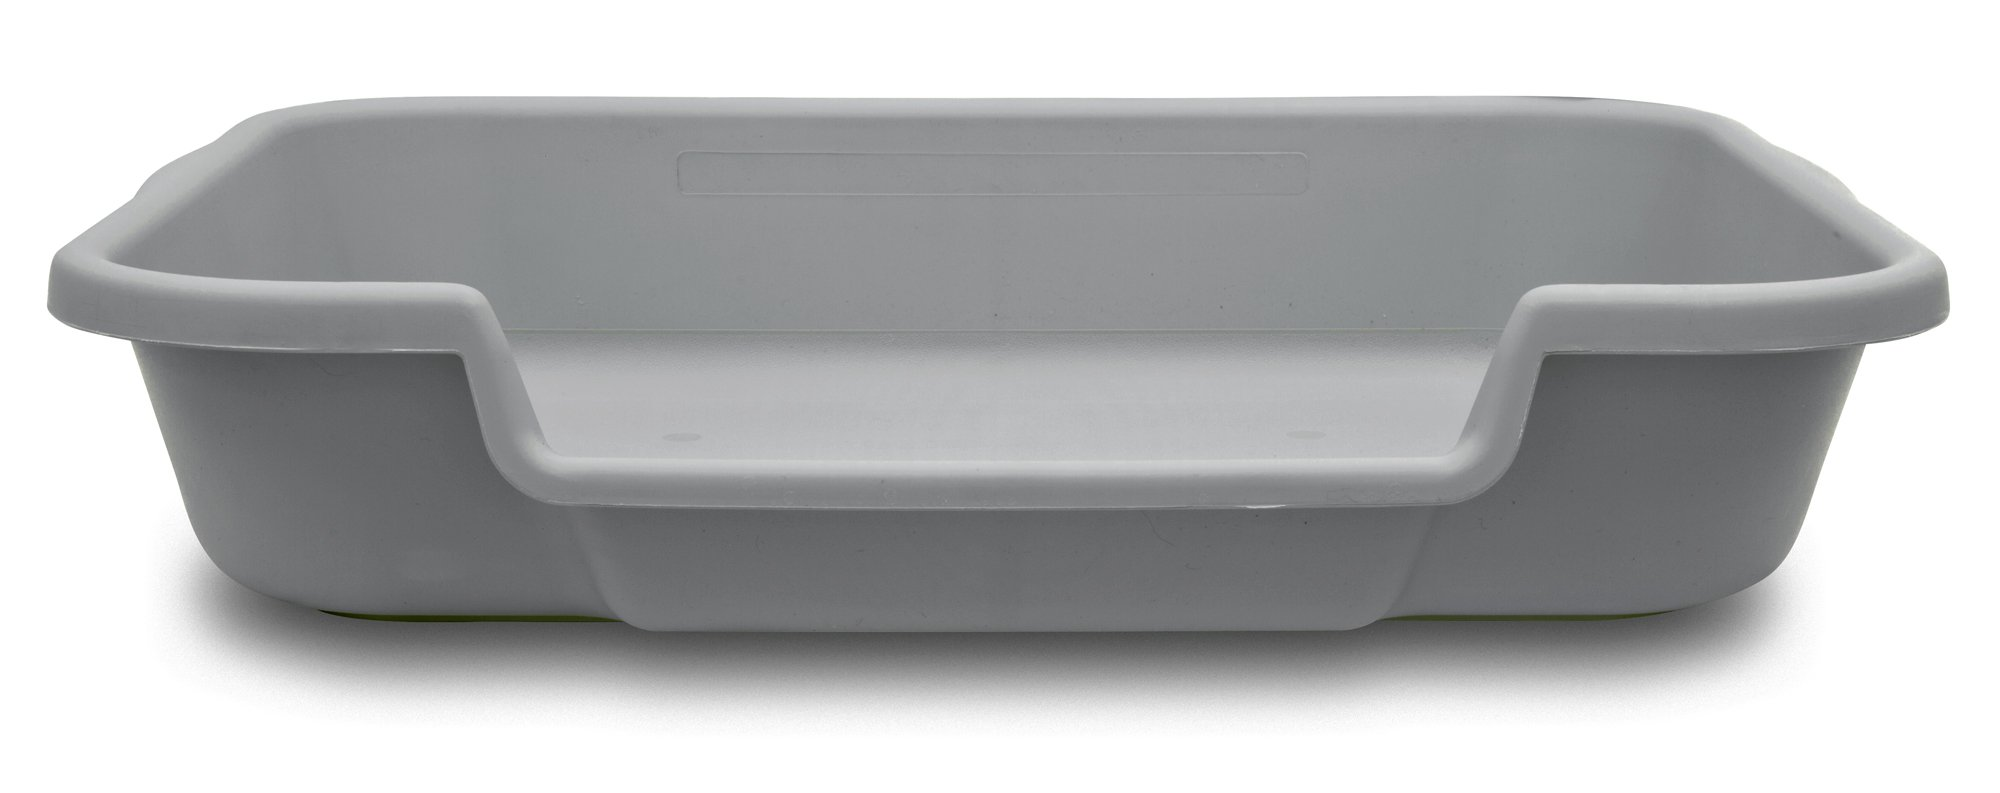 PuppyGoHere Dog Litter Box by Recycled Gray Color 24''x20''x5'' Training your dog is necessary. Choose the right size for your dog. Great for Senior Cats and Rabbits.Training guide included USA